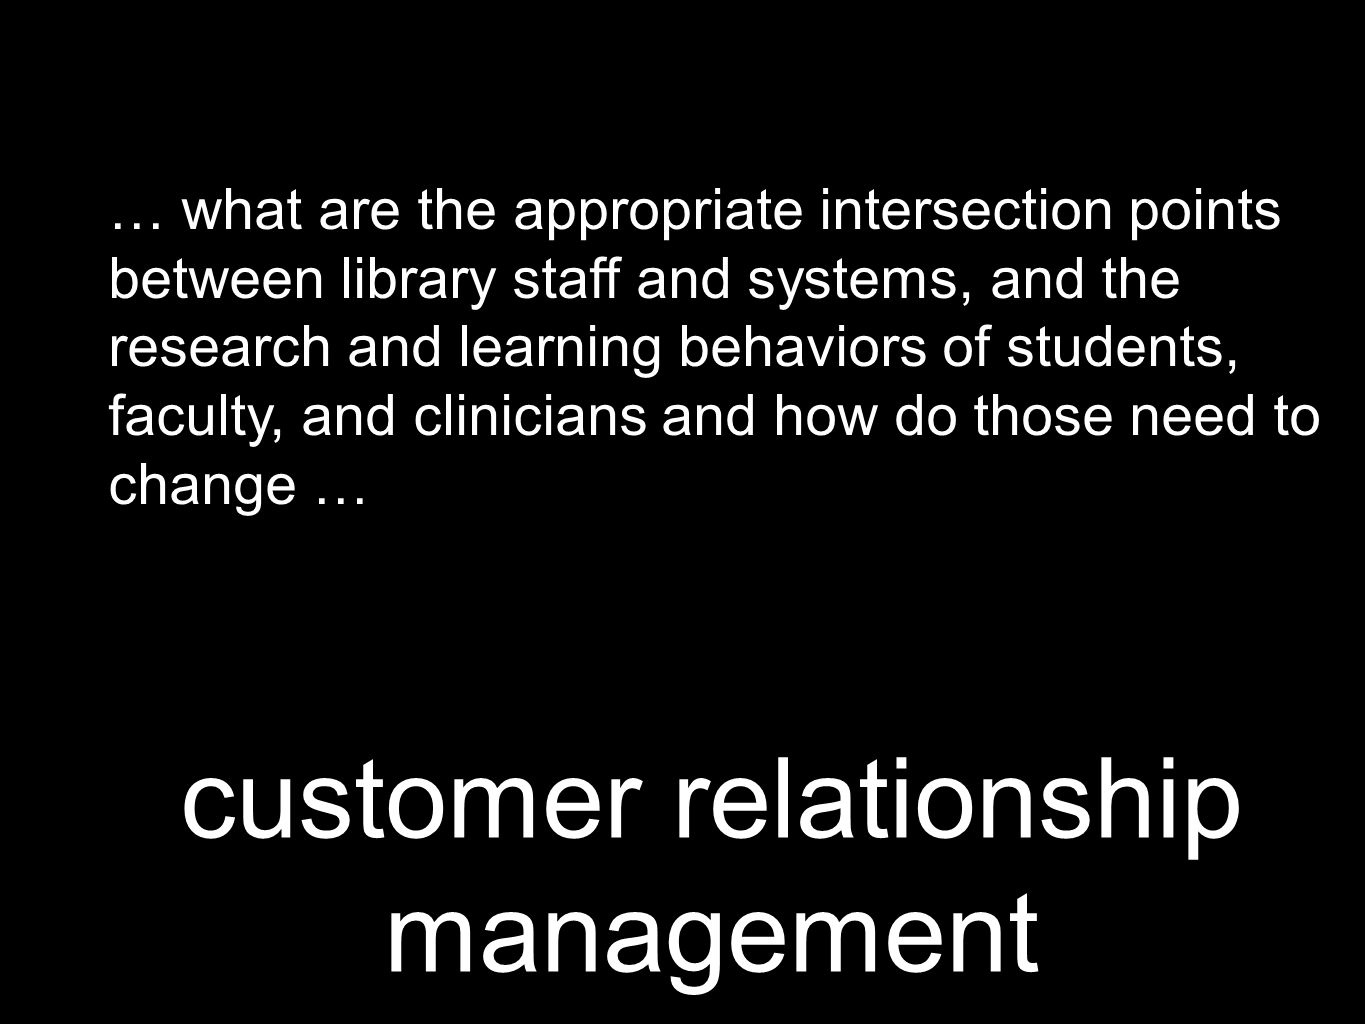 customer relationship management … what are the appropriate intersection points between library staff and systems, and the research and learning behaviors of students, faculty, and clinicians and how do those need to change …